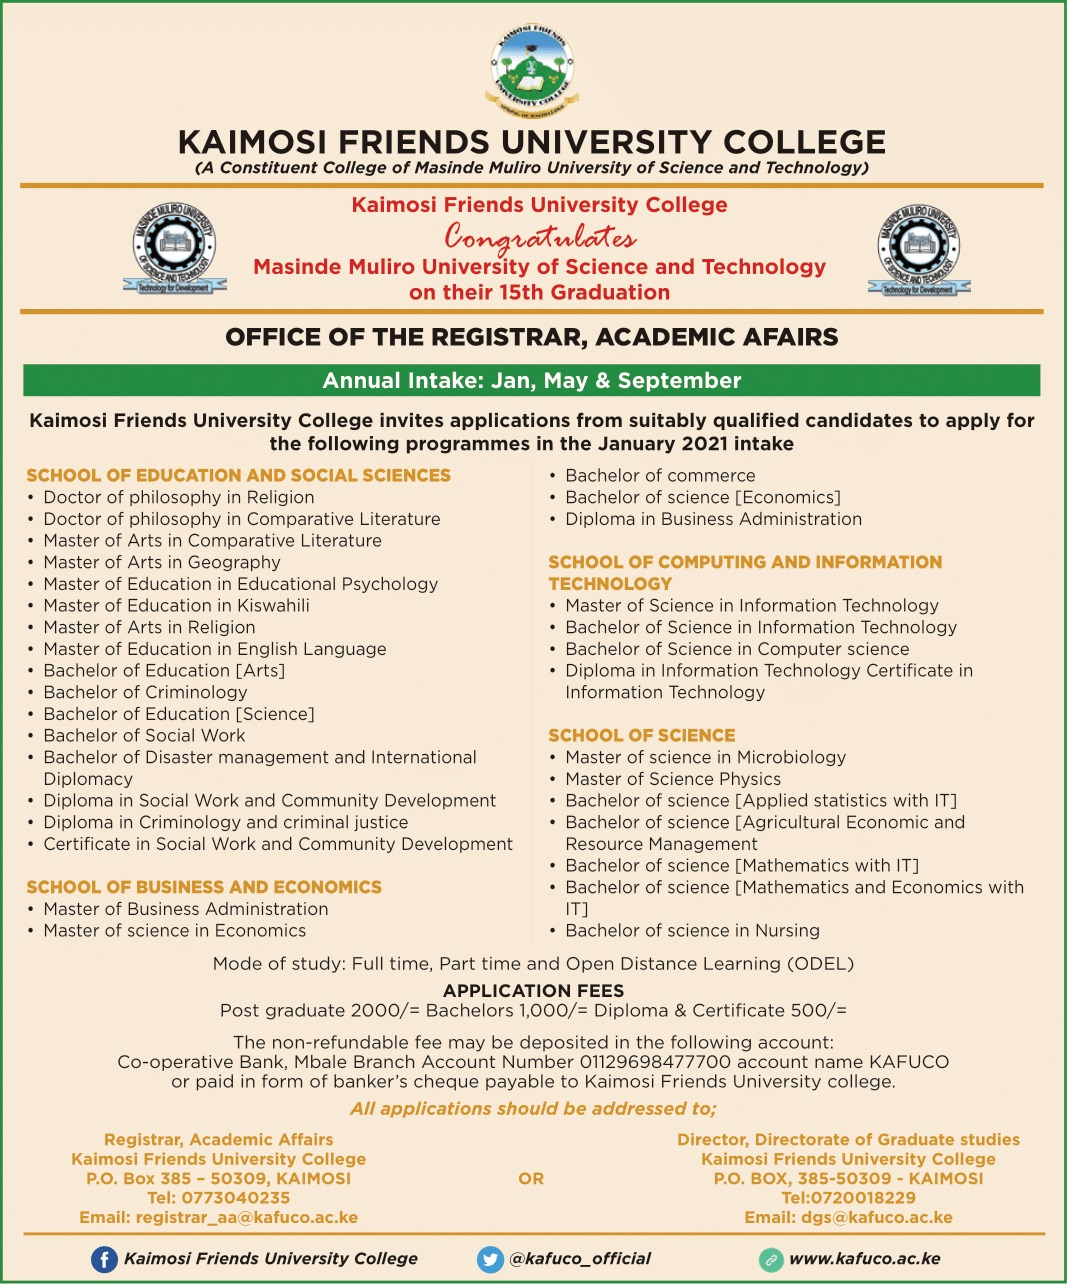 0000161114 01 KAIMOSI FRIENDS UNIVERSITY COLLEGE 3 1